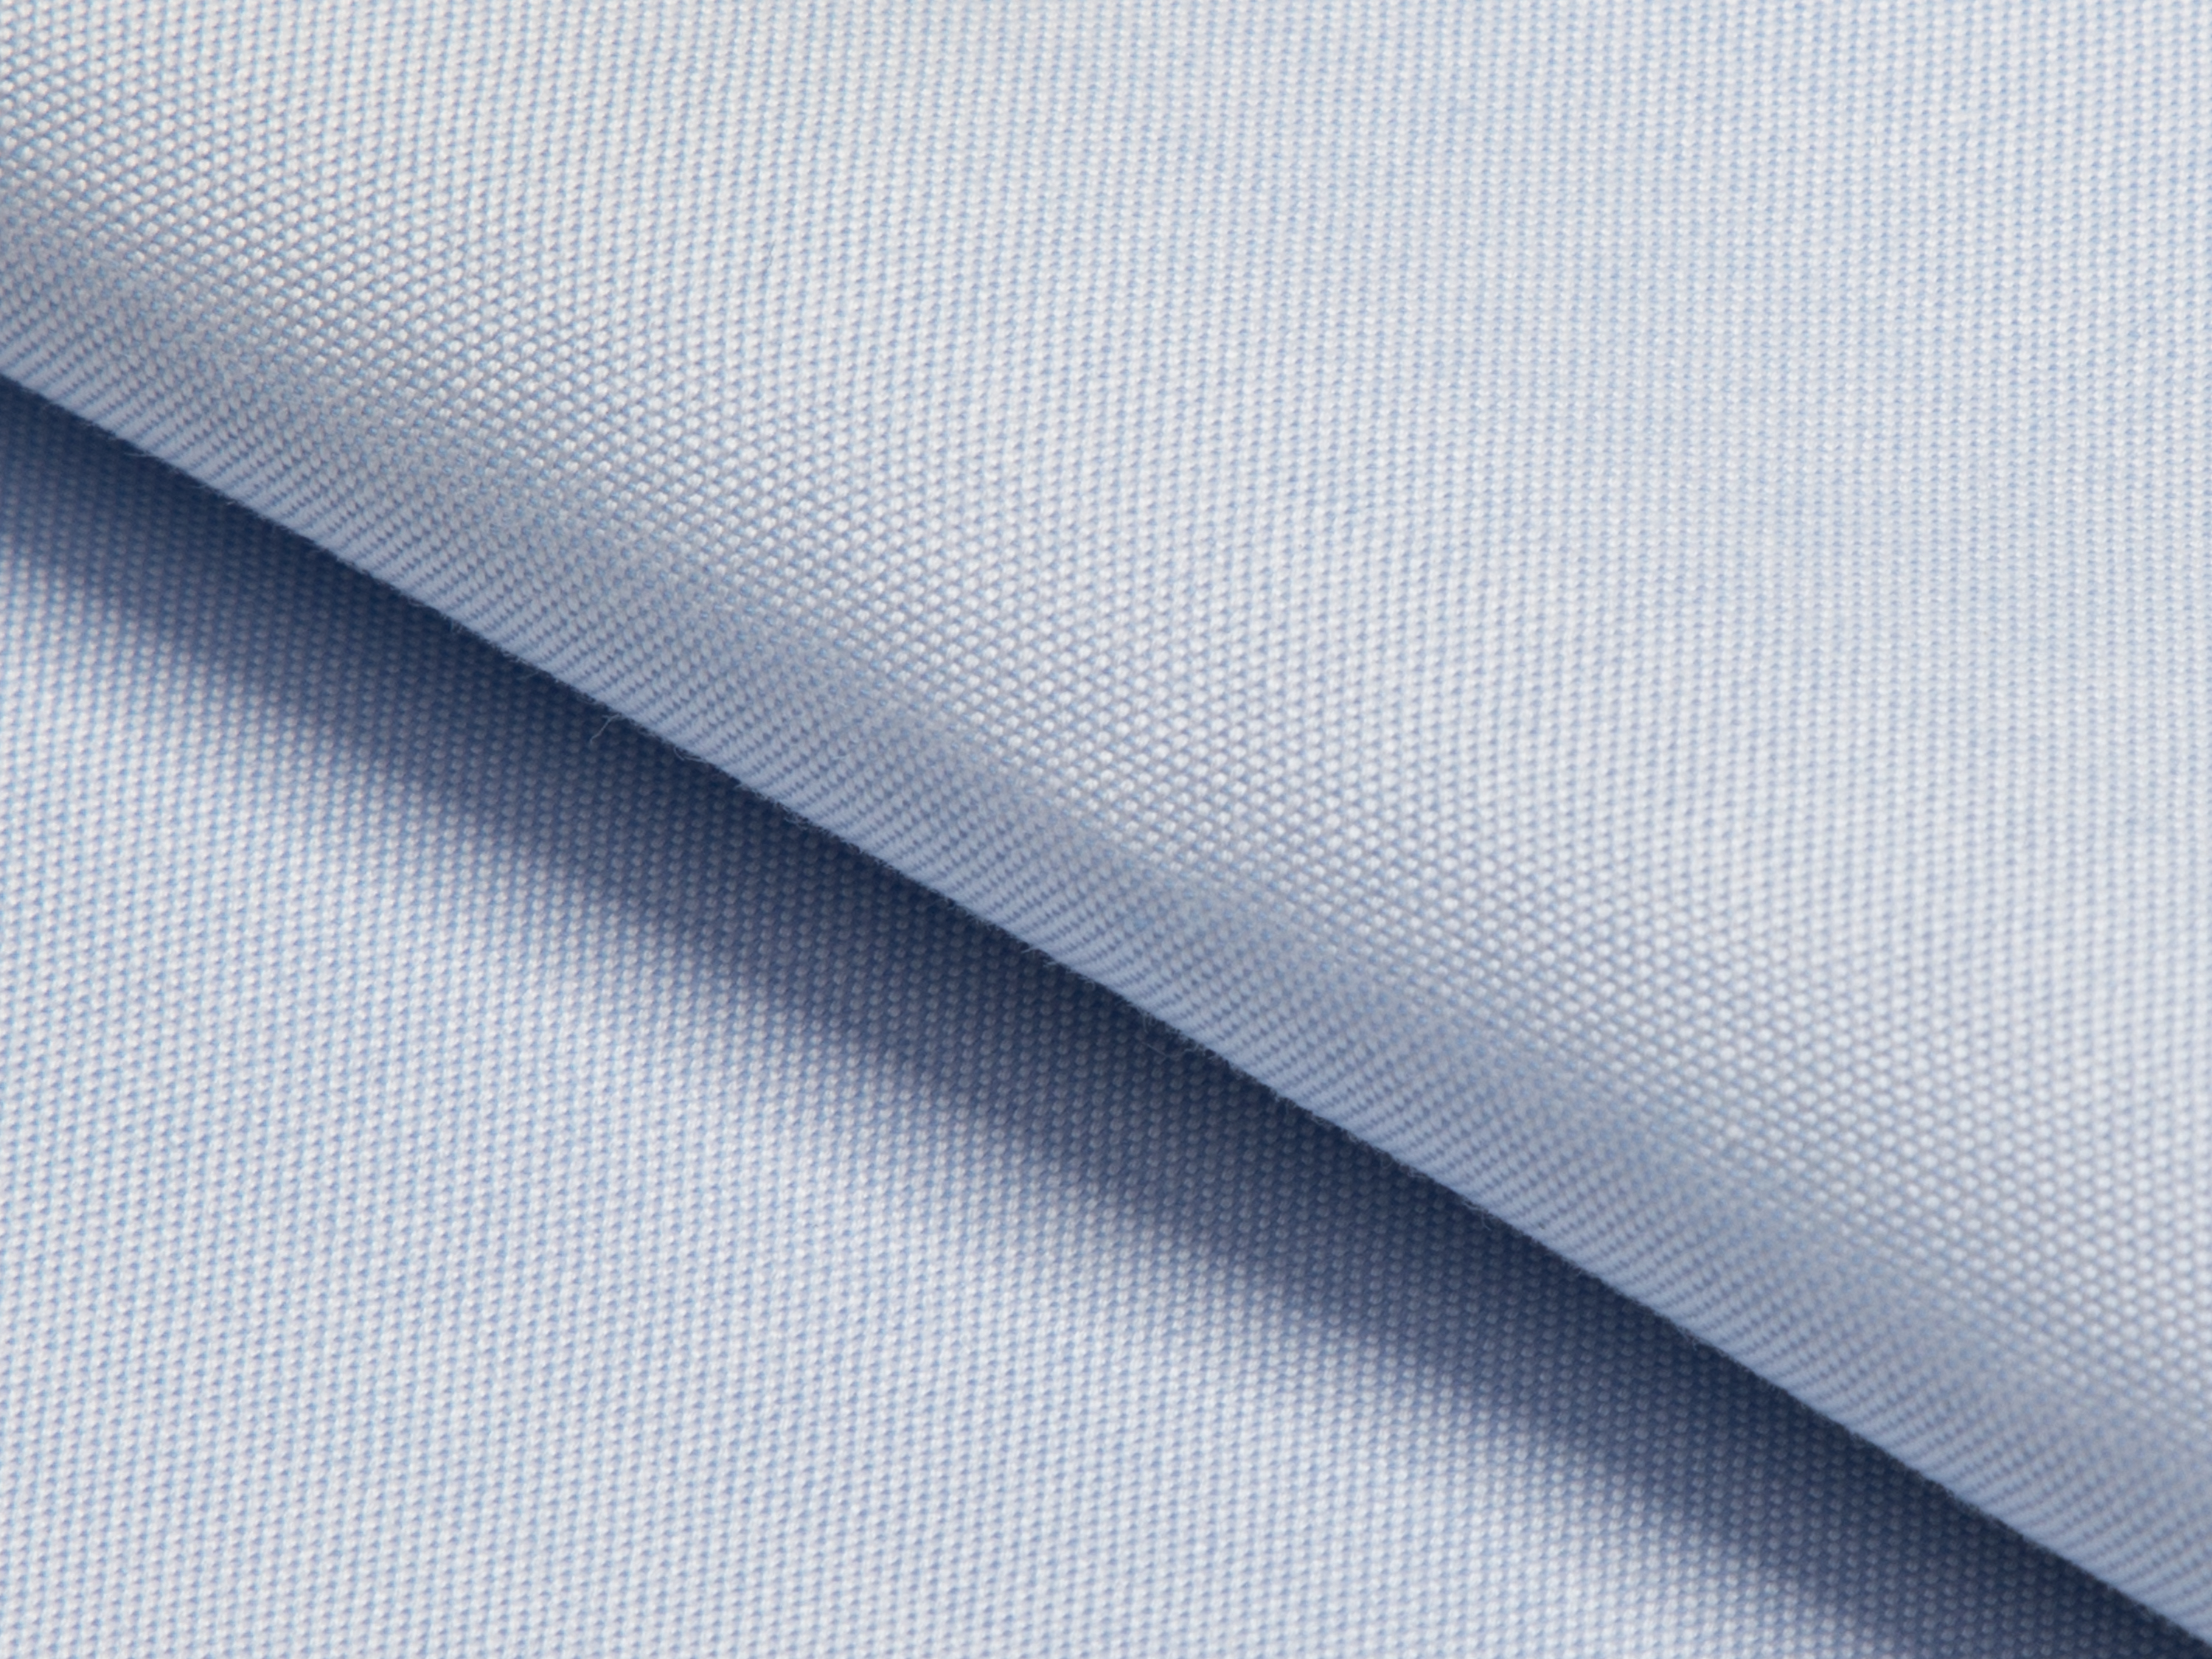 Buy tailor made shirts online - PINPOINT LUXURY (NEW) - Pinpoint Light Blue